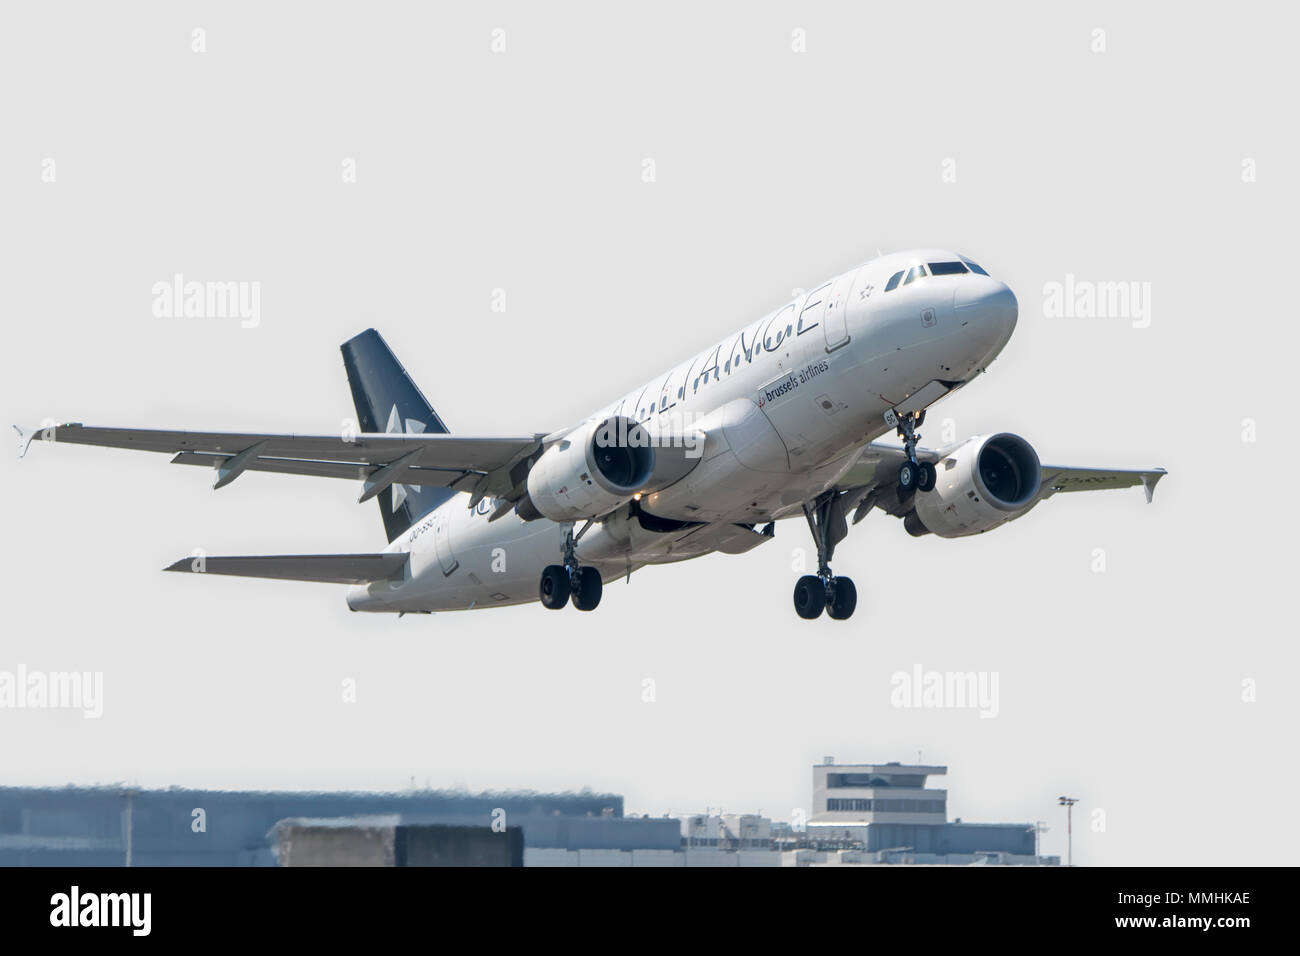 Airbus A319-112, narrow-body, commercial passenger twin-engine jet airliner from Belgian Brussels Airlines in flight - Stock Image